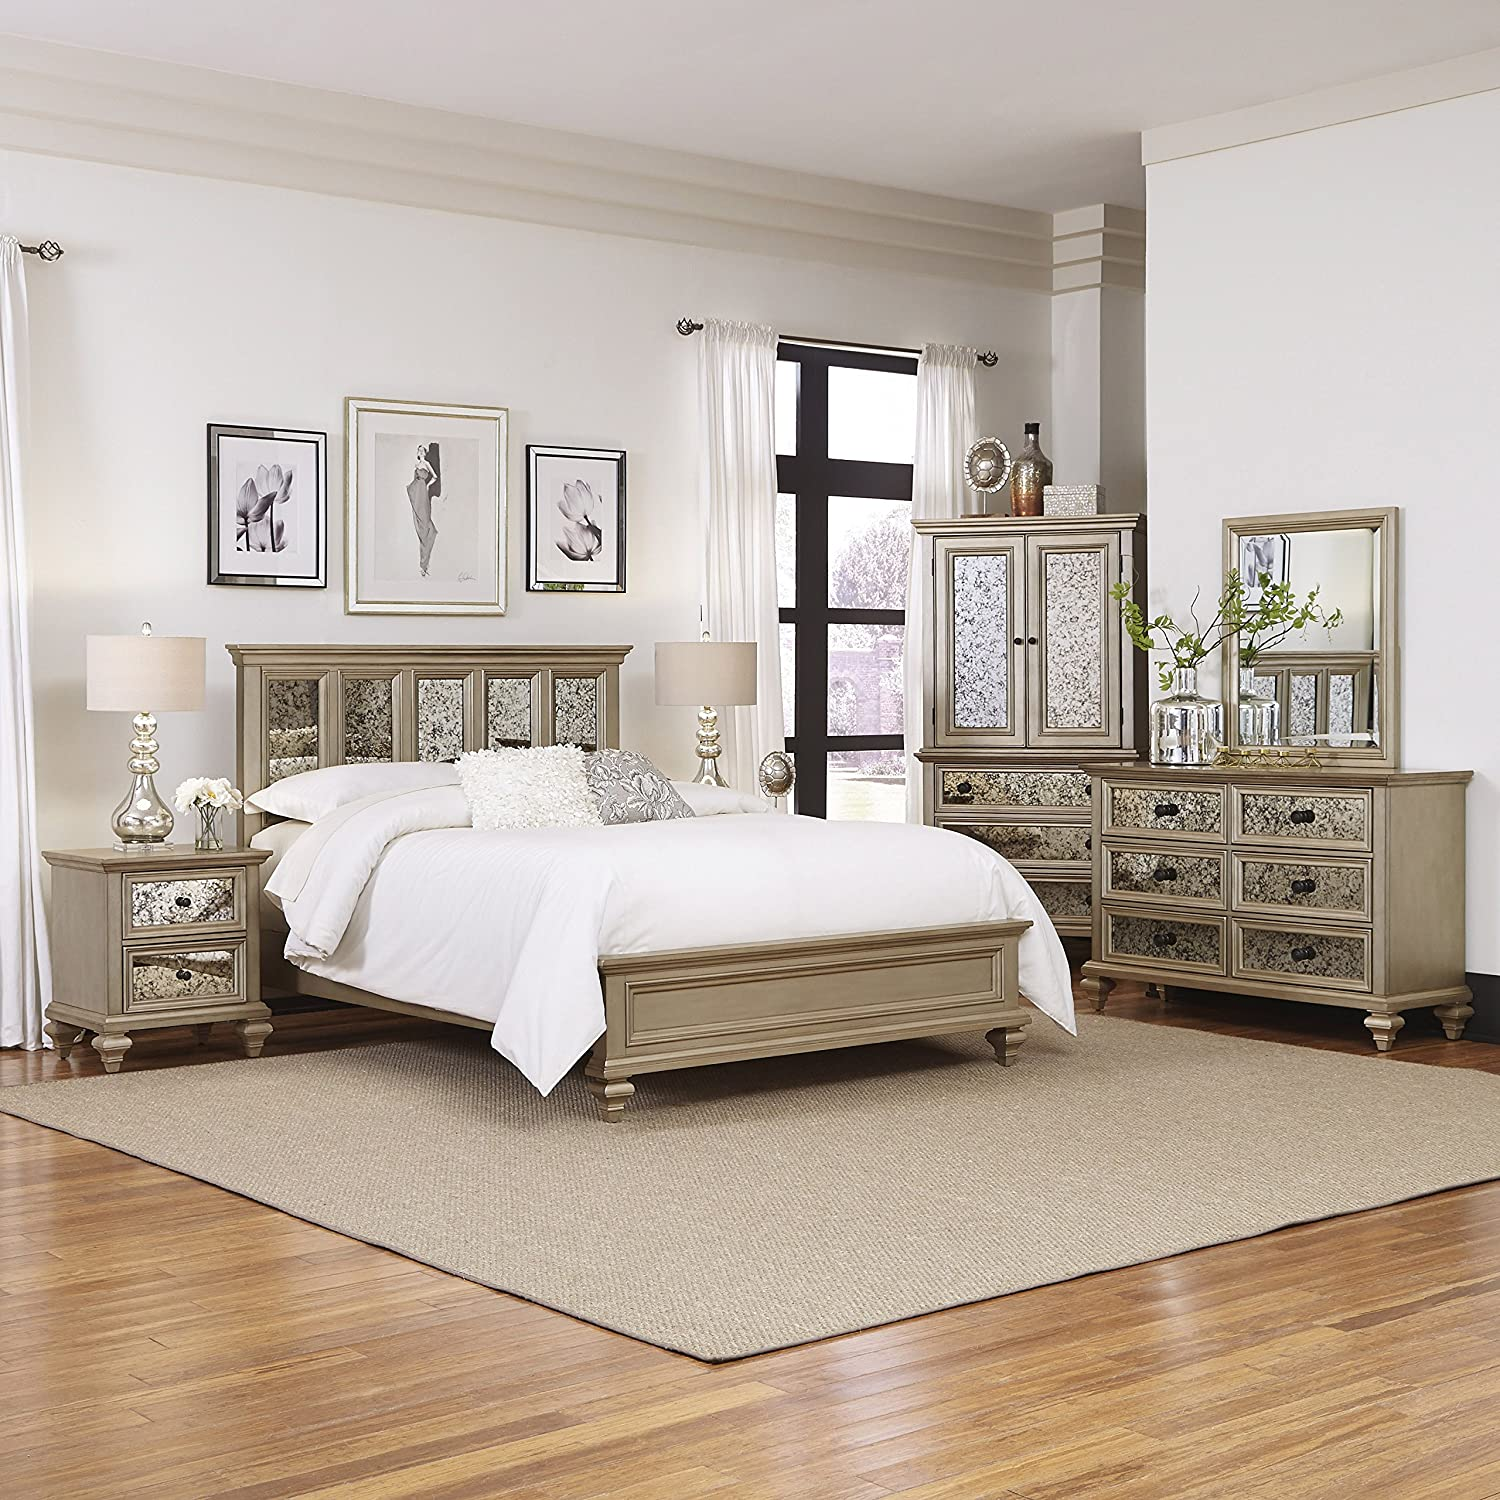 Beautiful Amazon.com: Home Styles Visions 5 Piece King Bedroom Set: Kitchen U0026 Dining